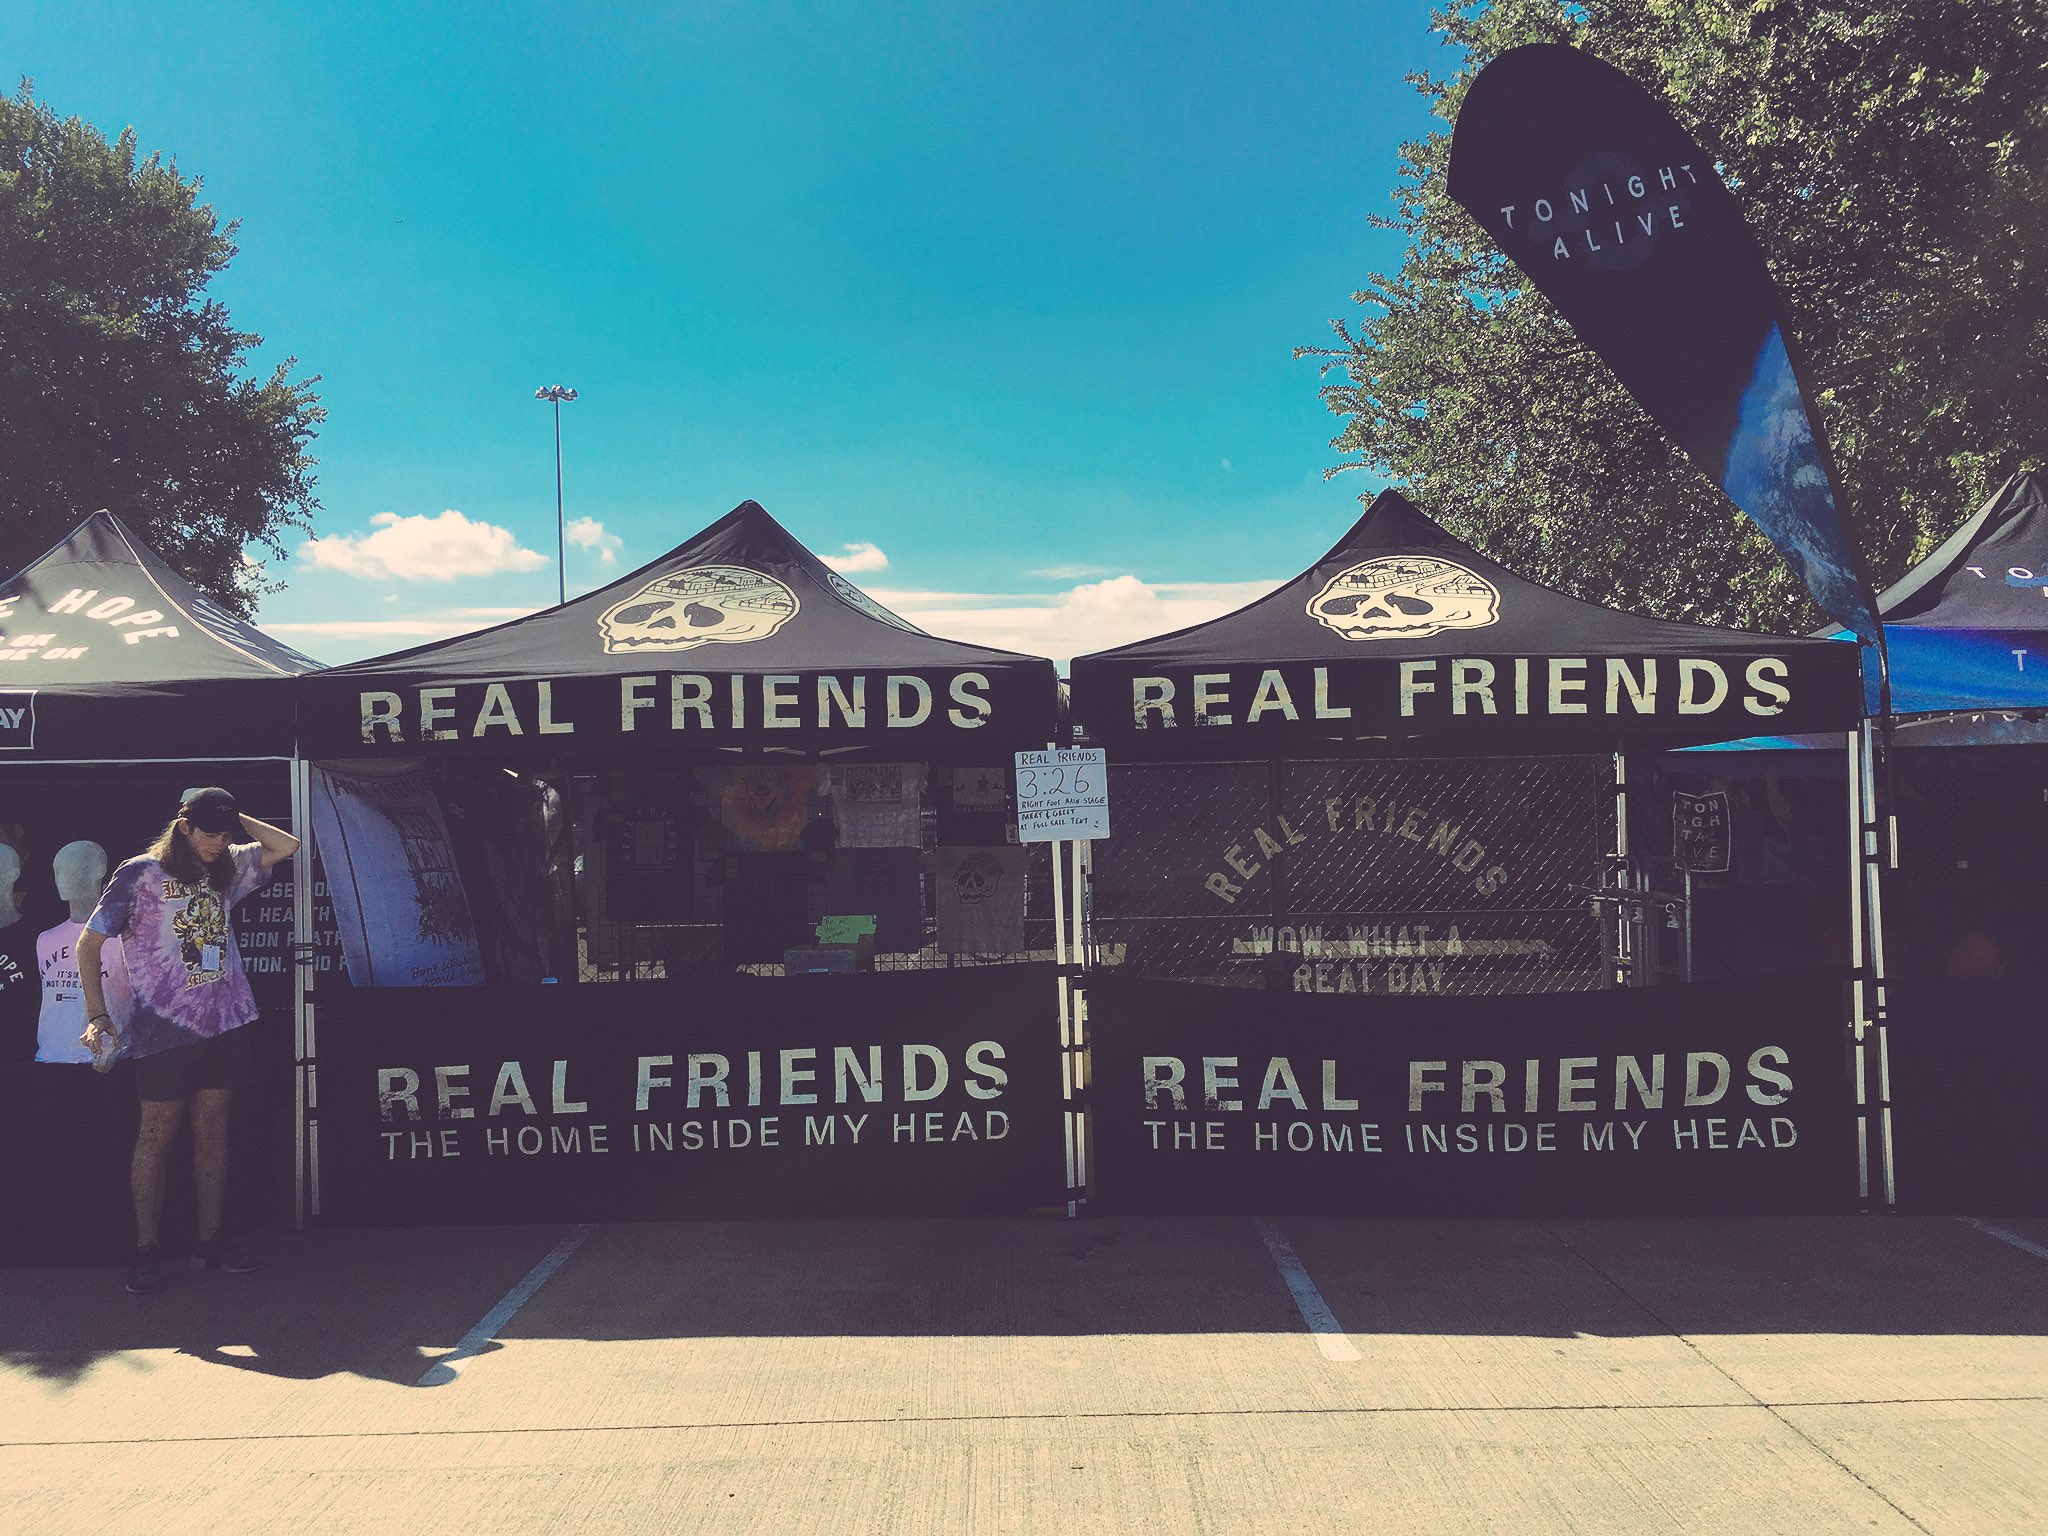 Dallas! Our merch tent is near the @FullSail stage and across from the @TrojanCondoms tent. 😎 https://t.co/09psB2ZYUp